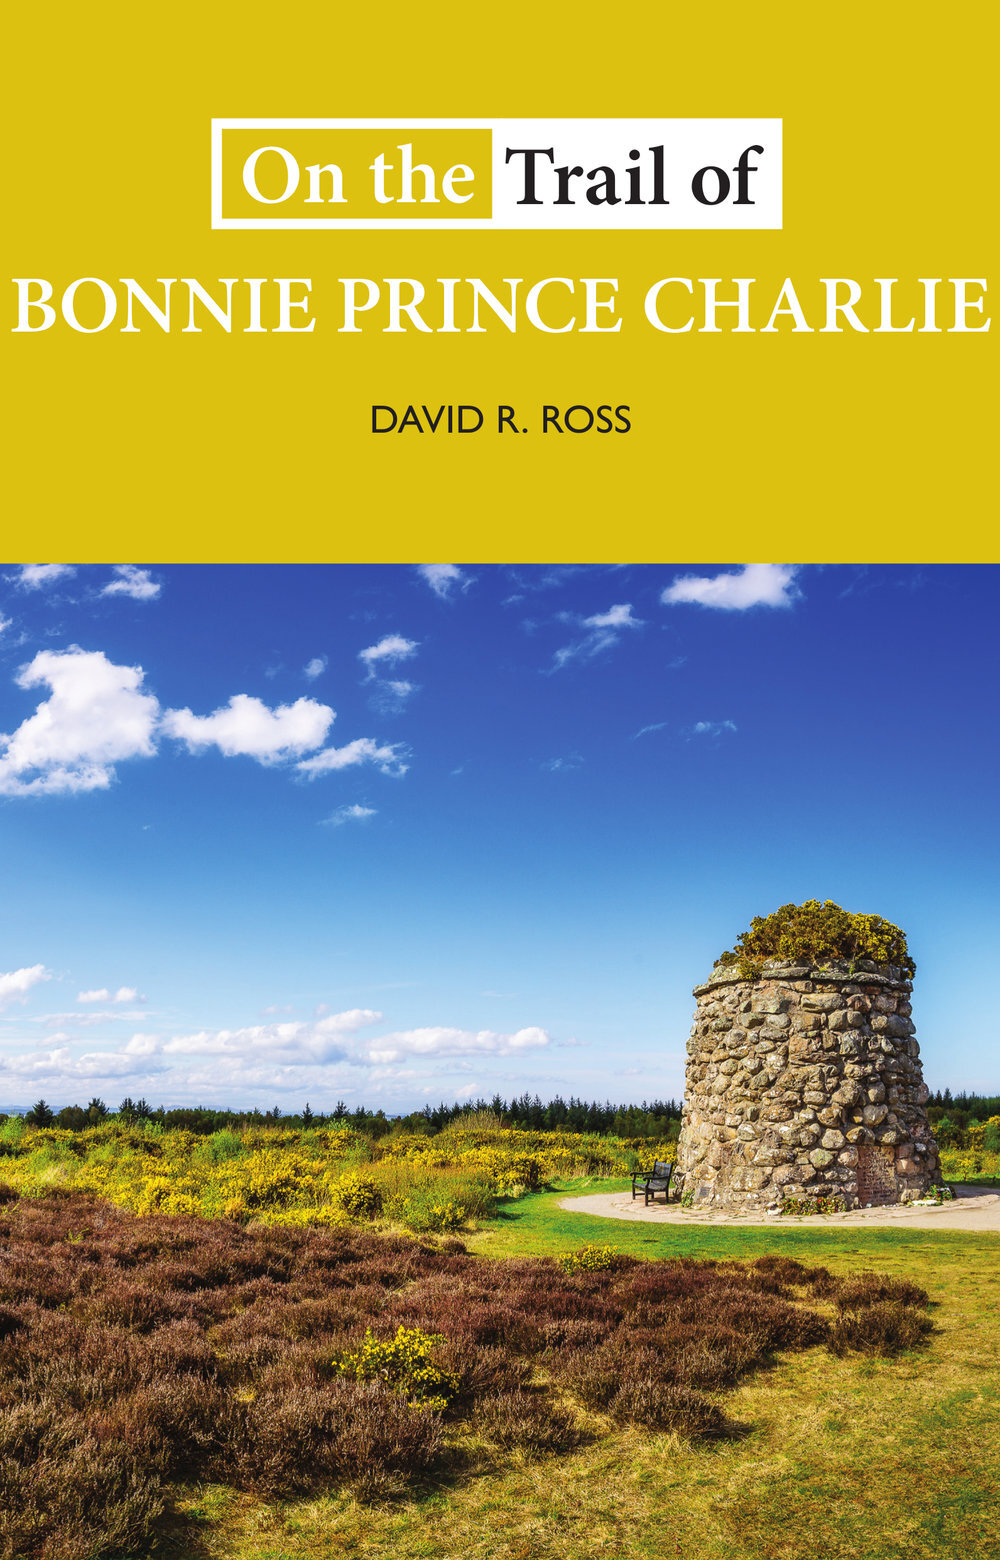 On+the+Trail+Bonnie+Prince+Charlie+David+R+Ross+9781913025090+Luath+Press.jpg